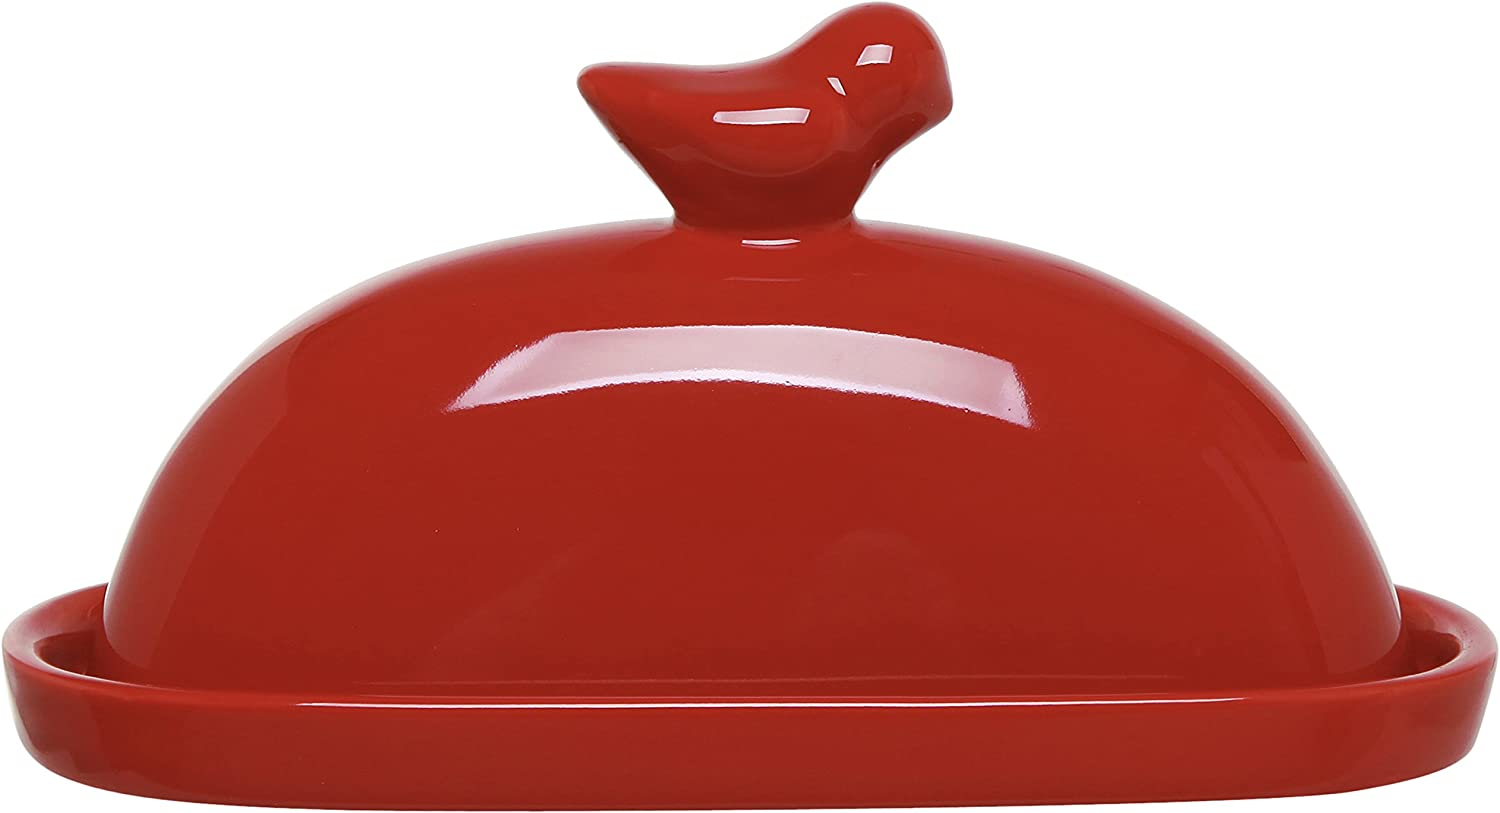 MyGift Red Bird Design Decorative Ceramic Butter Dish and Lid Cover